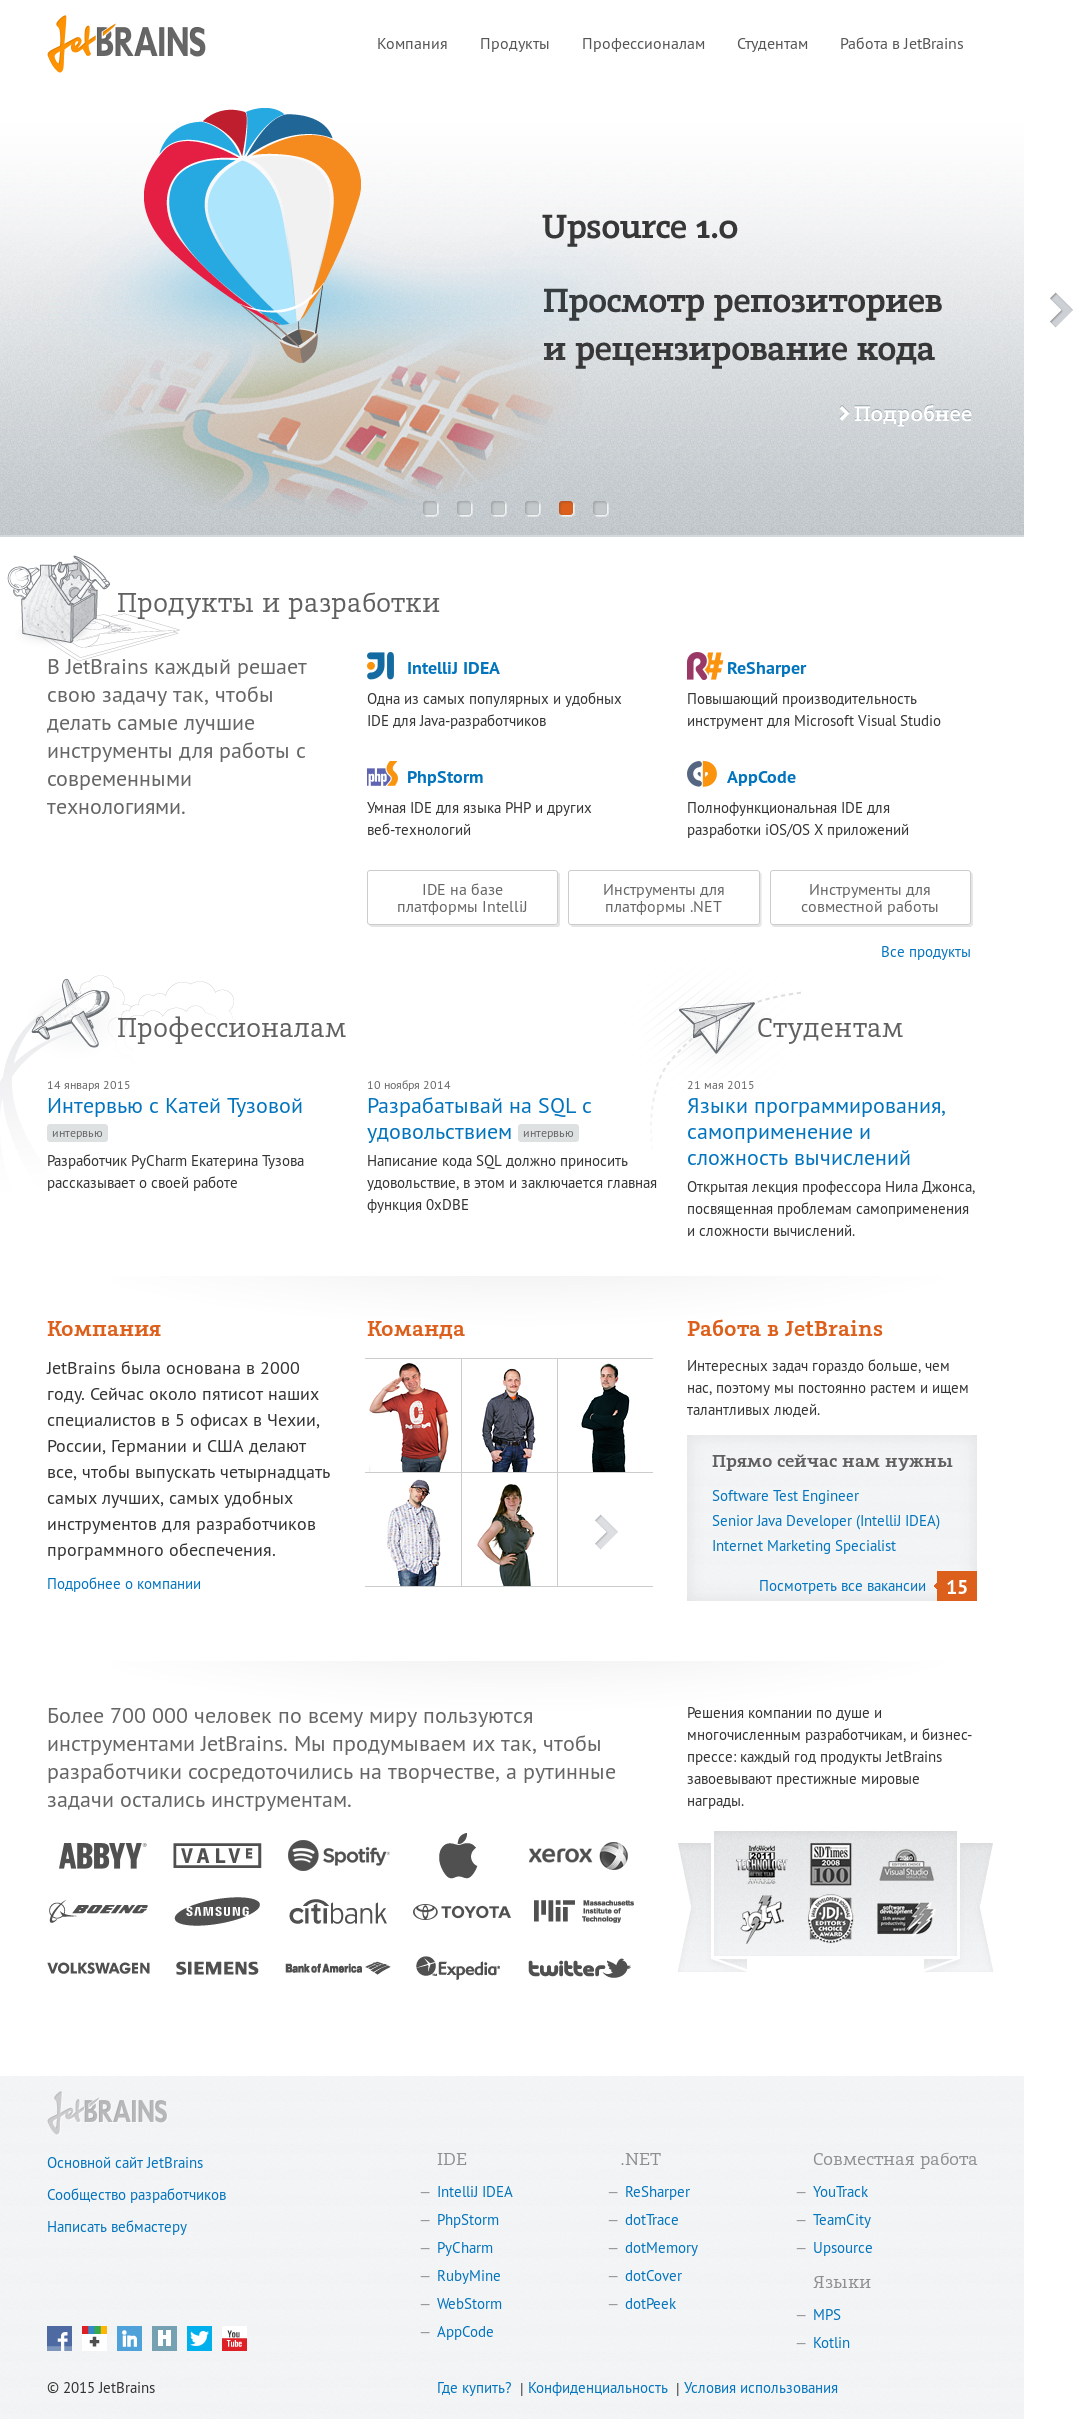 Jetbrains Competitors, Revenue and Employees - Owler Company